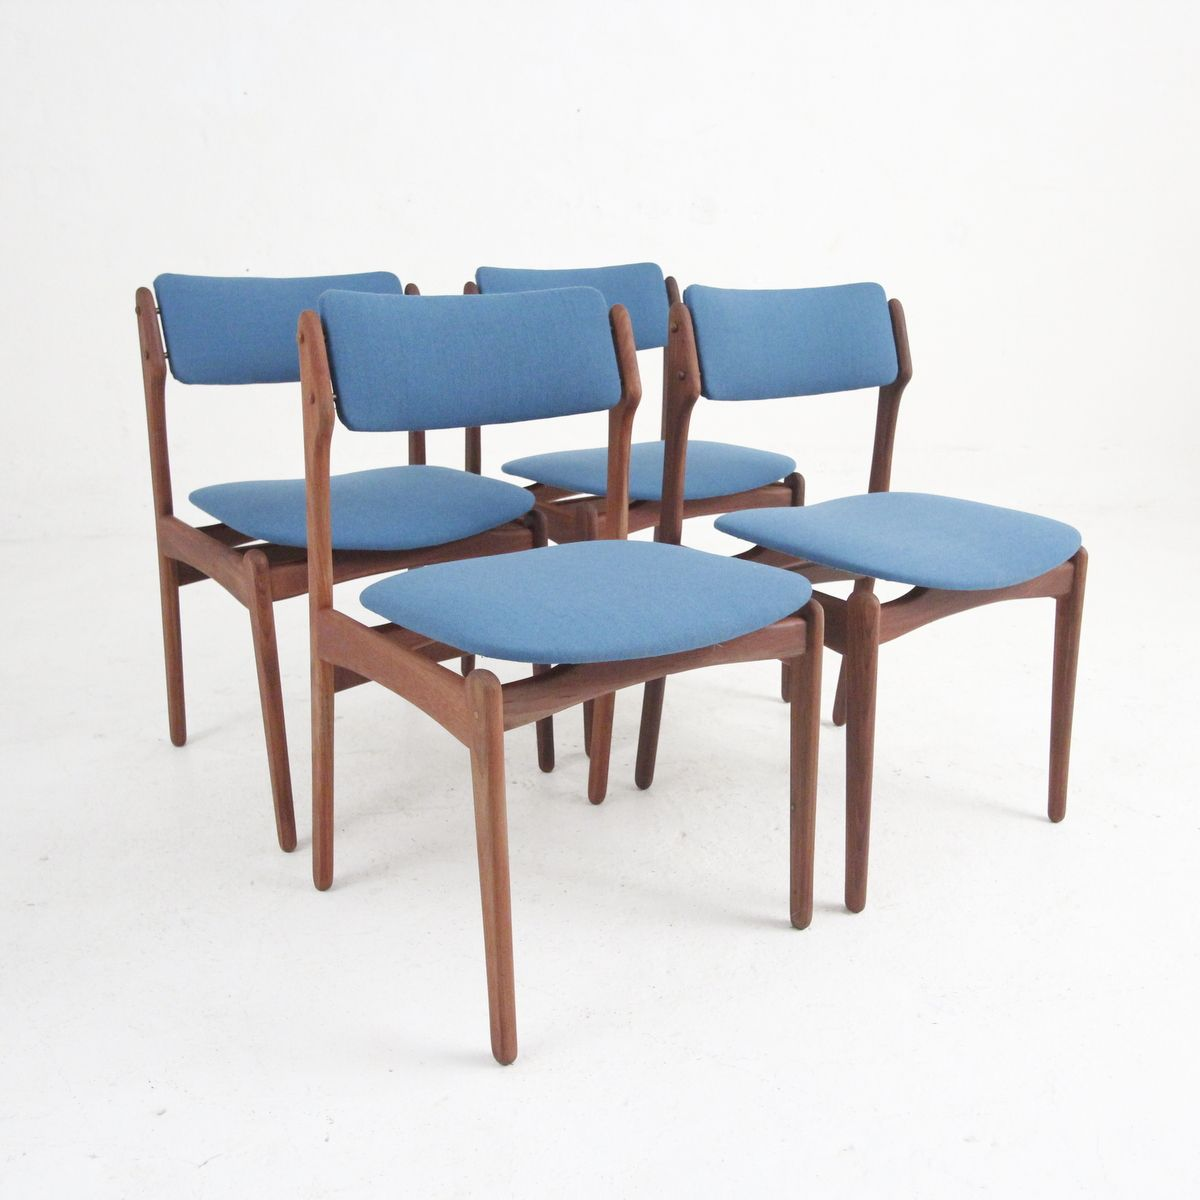 Vintage Danish Modern Dining Chairs In Rosewood, Set Of 4